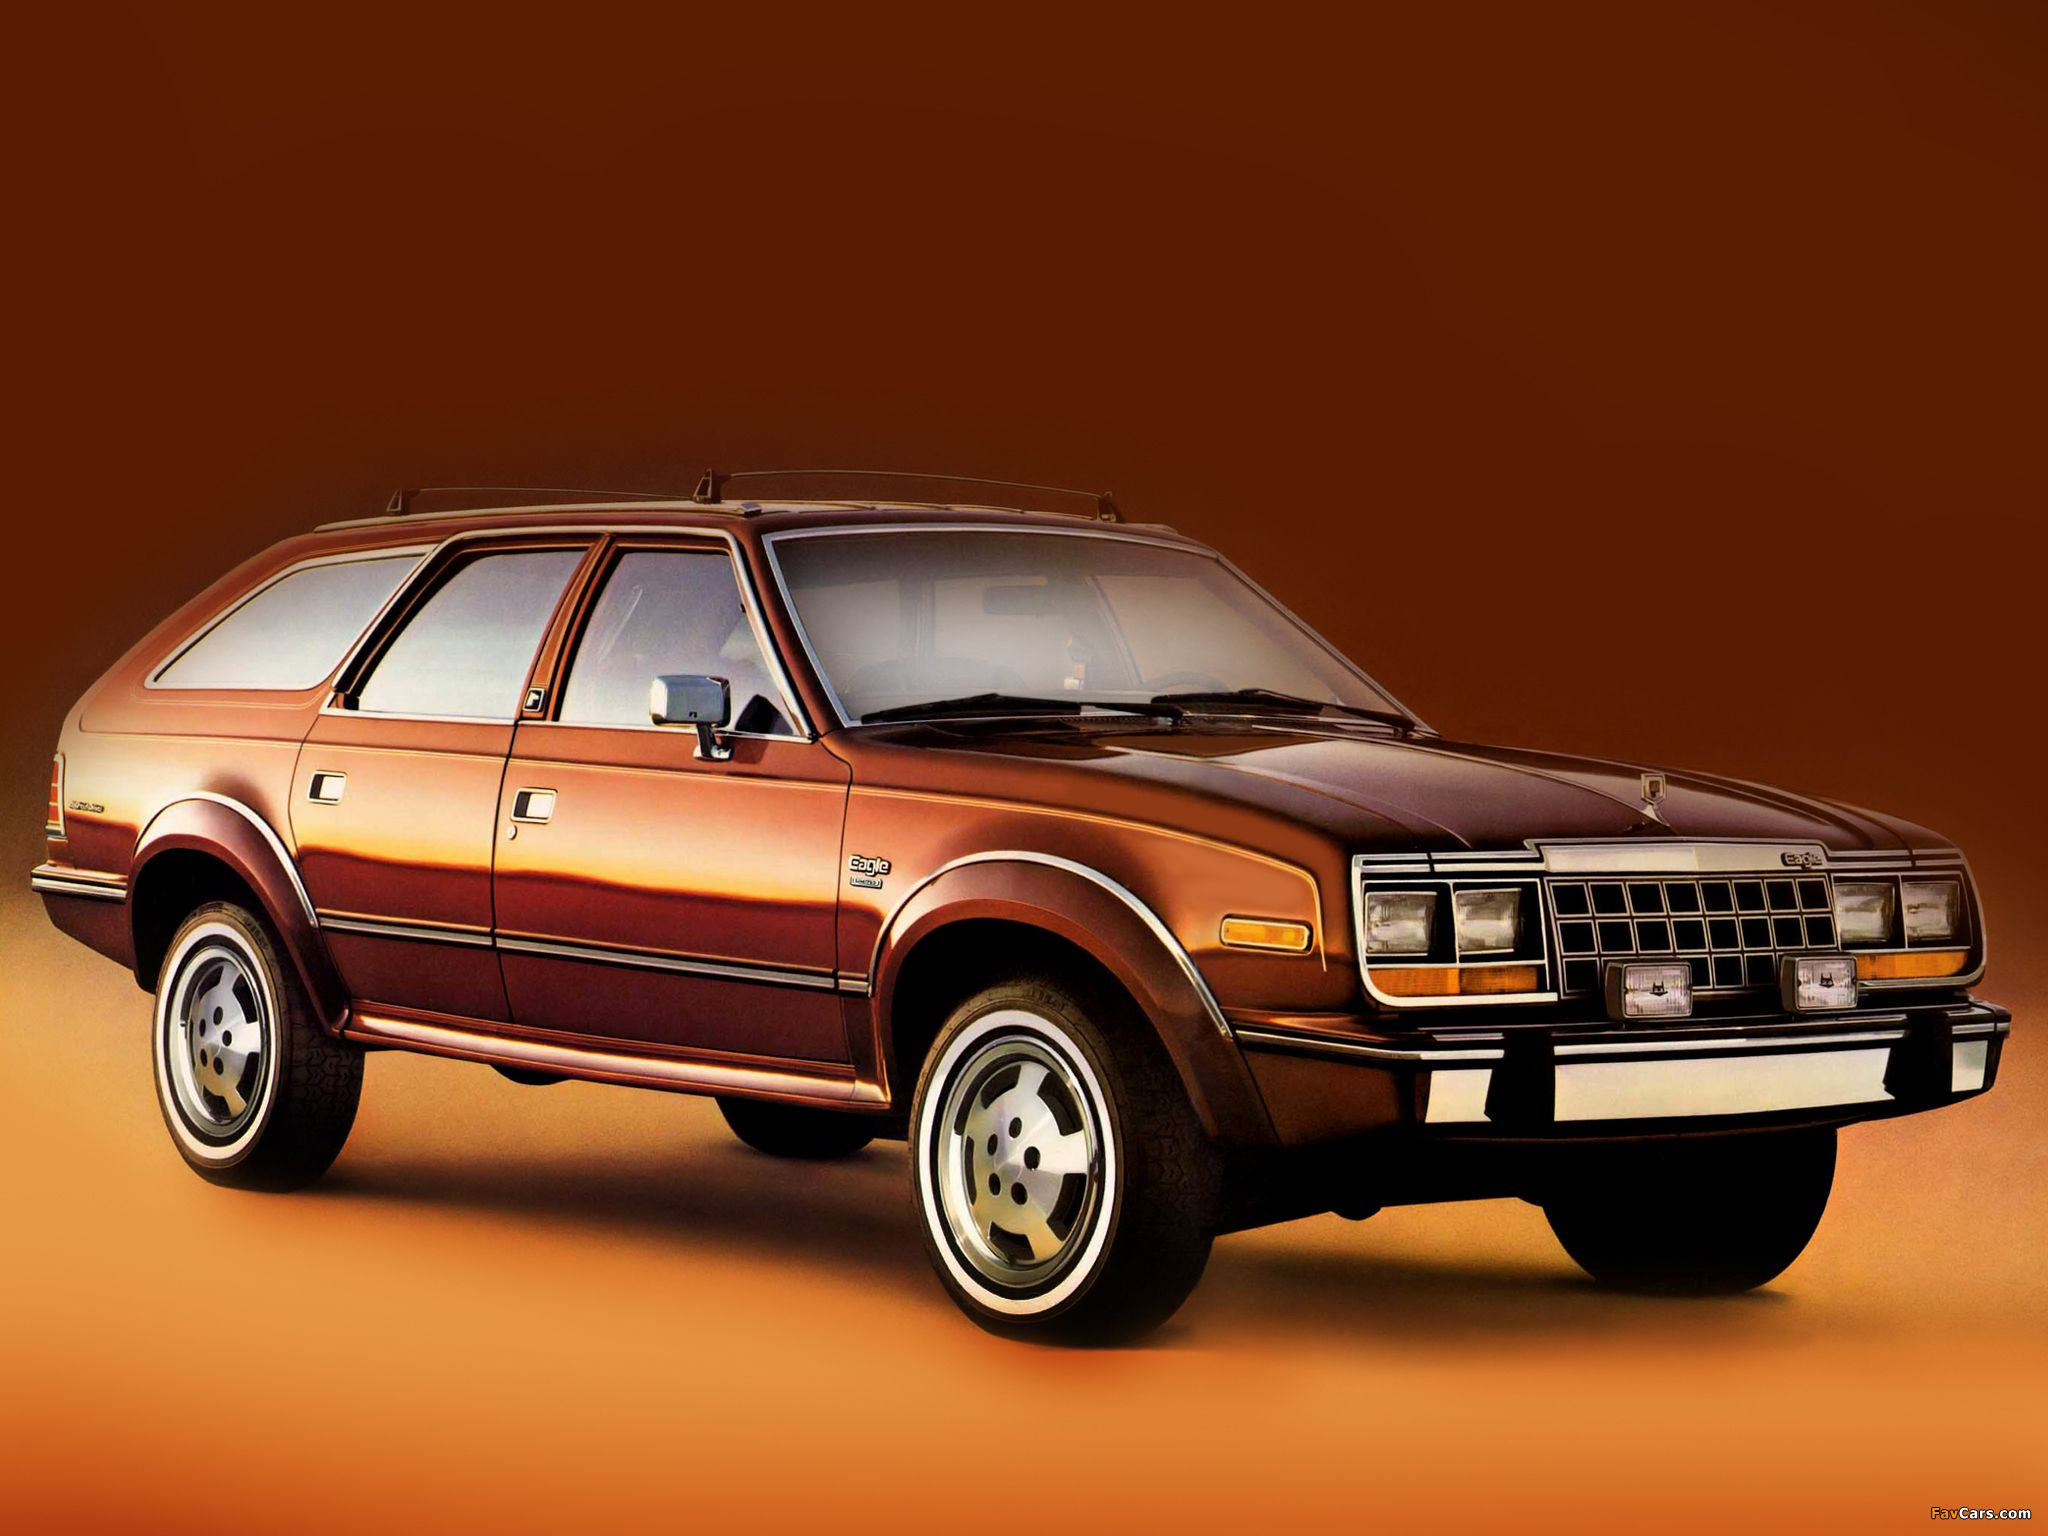 1980 Amc Eagle Was Ahead Of Its Time As One Of The First